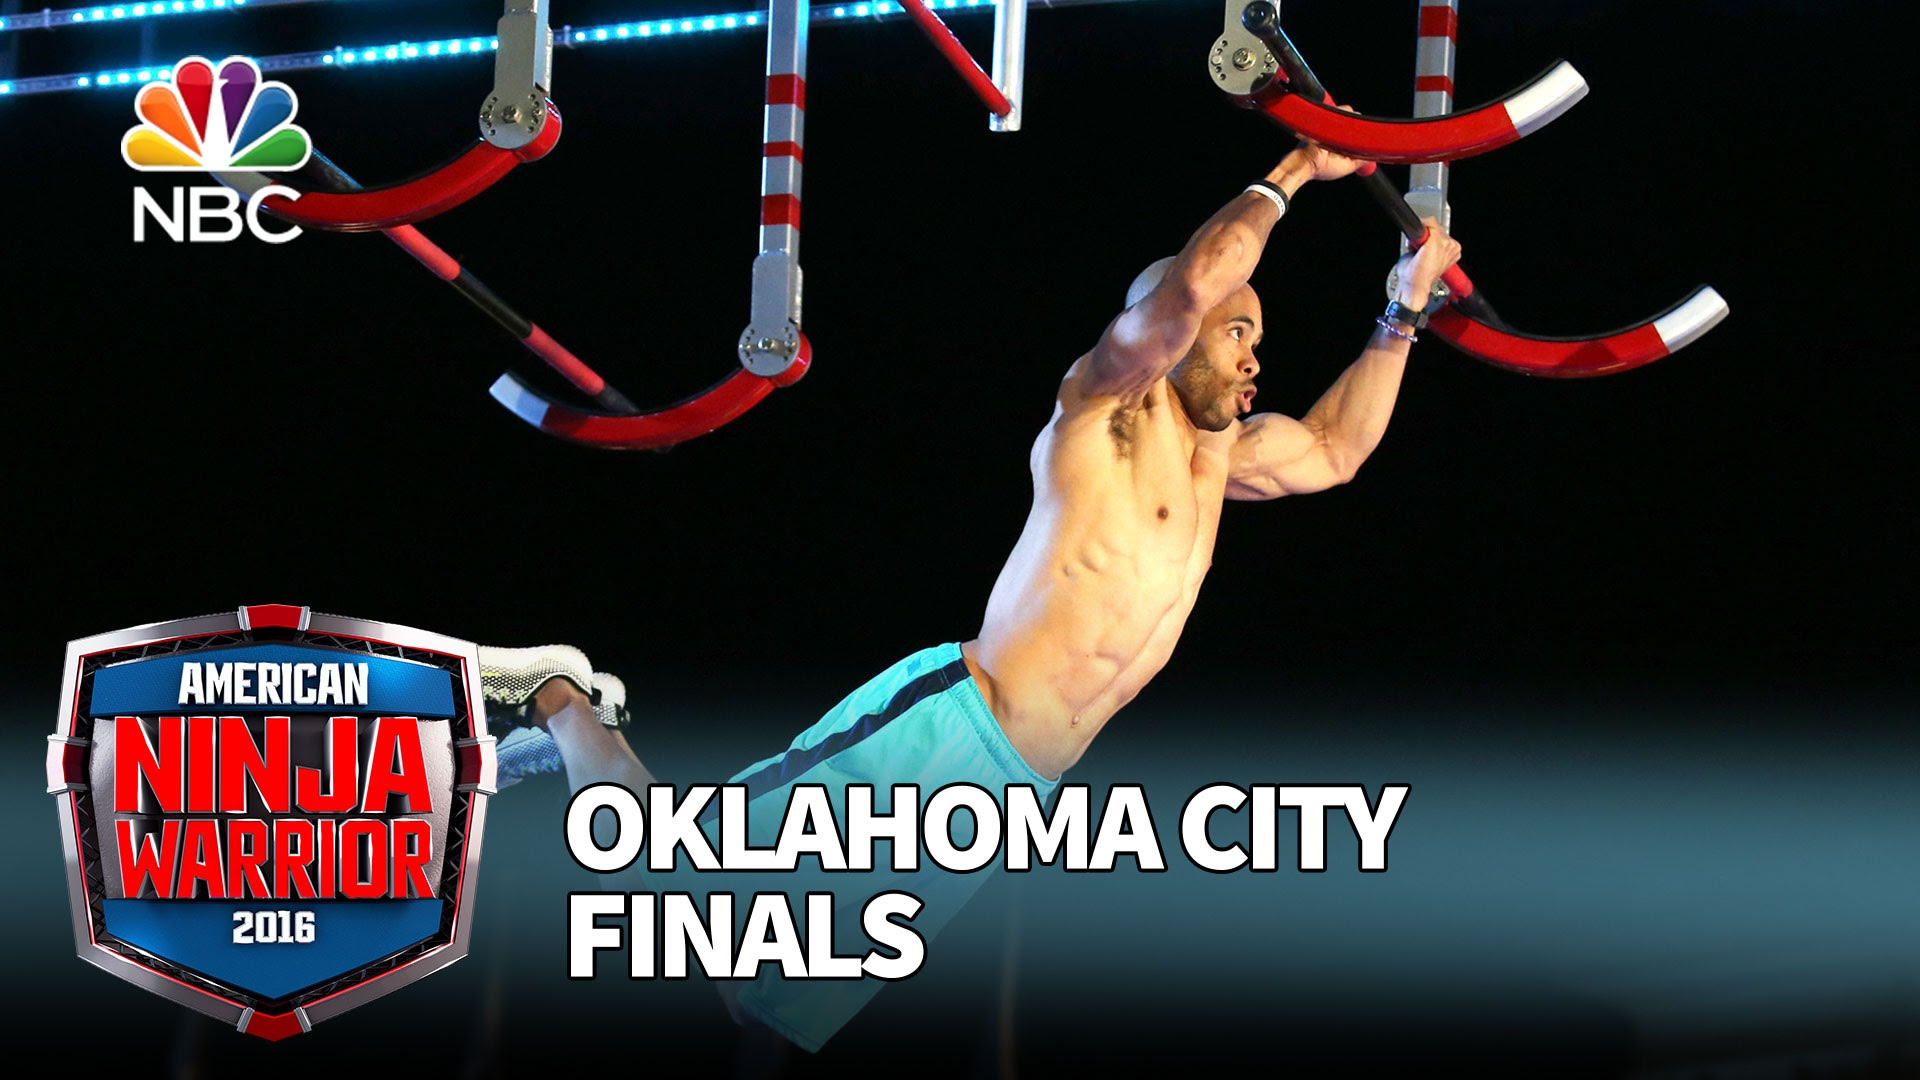 Oklahoma City Finals